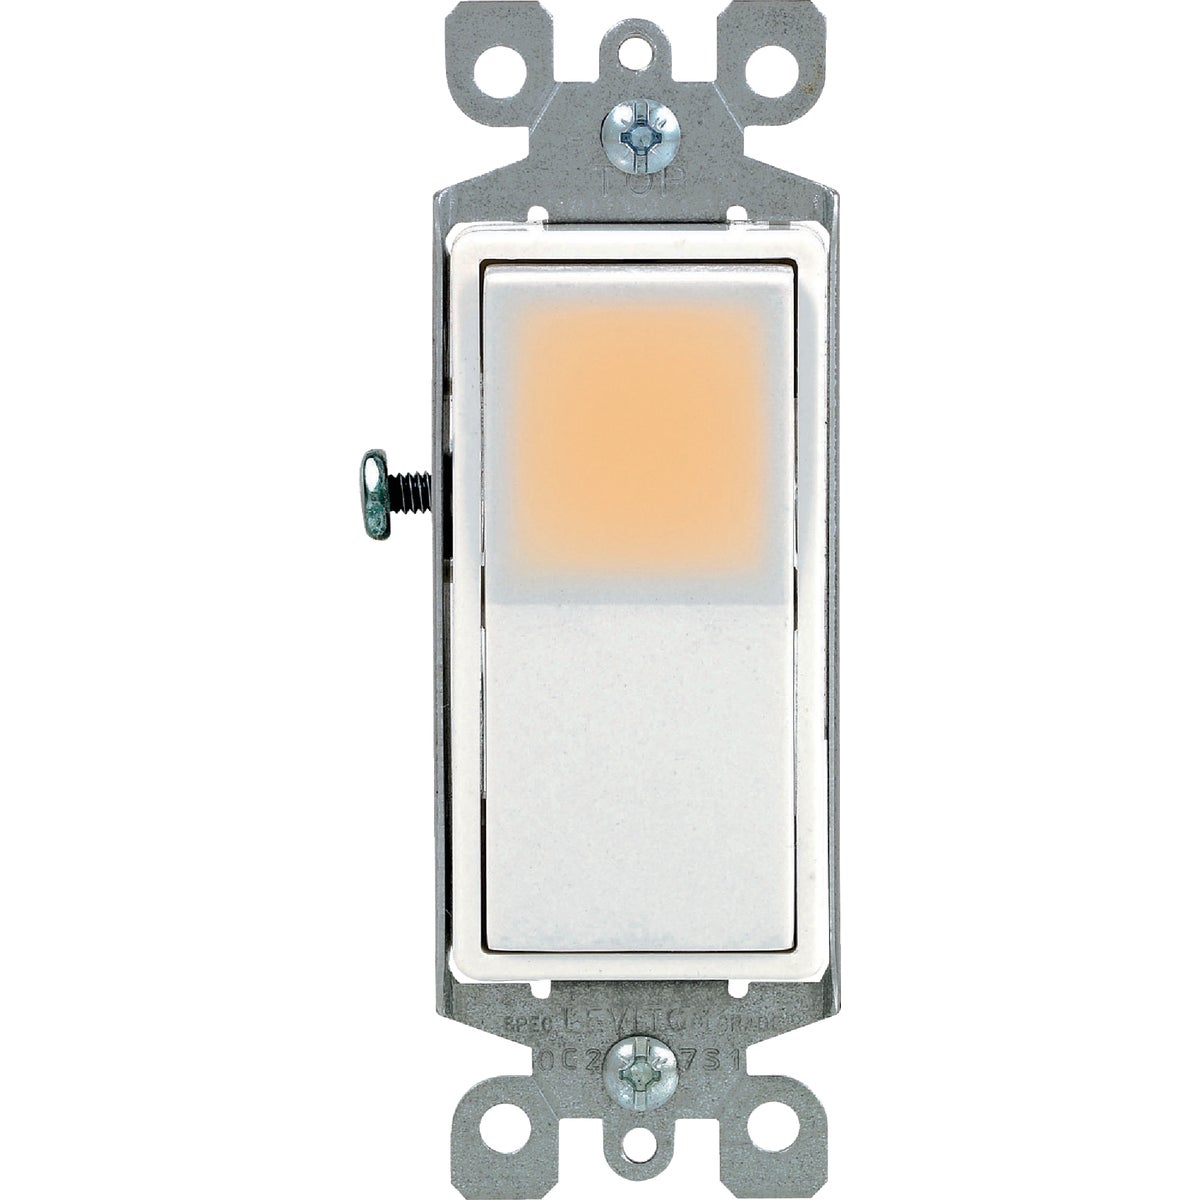 WHT 1POLE GRND SWITCH - S02-5611-2WS by Leviton Mfg Co